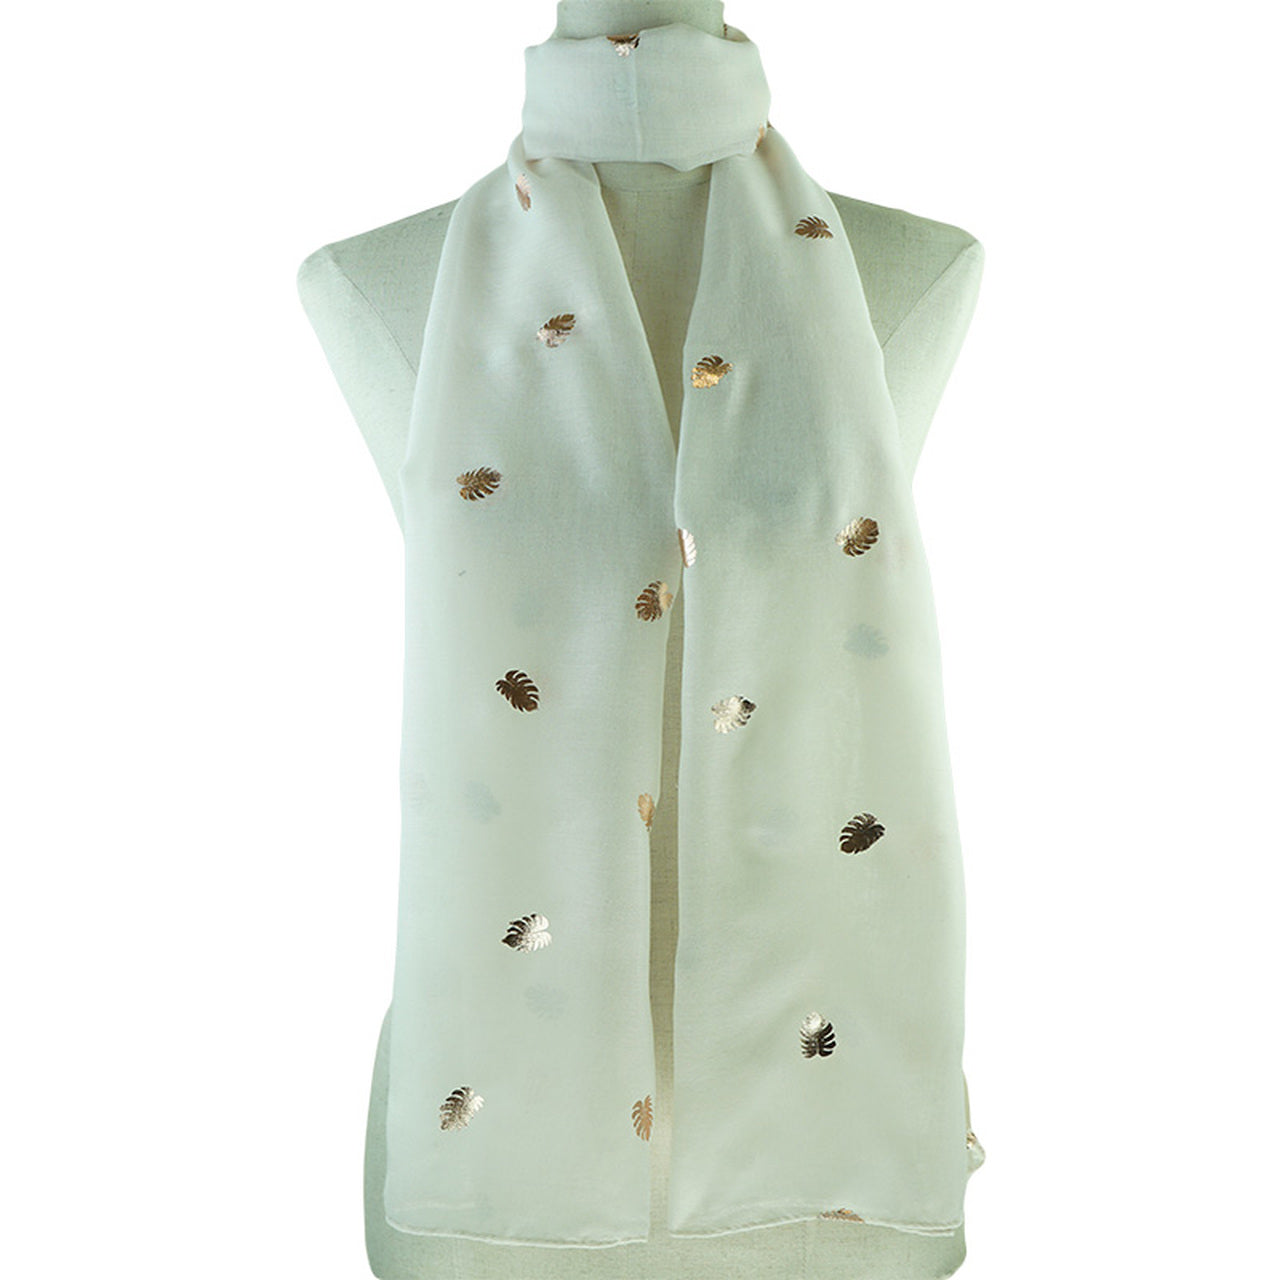 Beige Scarf with Gold Leaf Decals